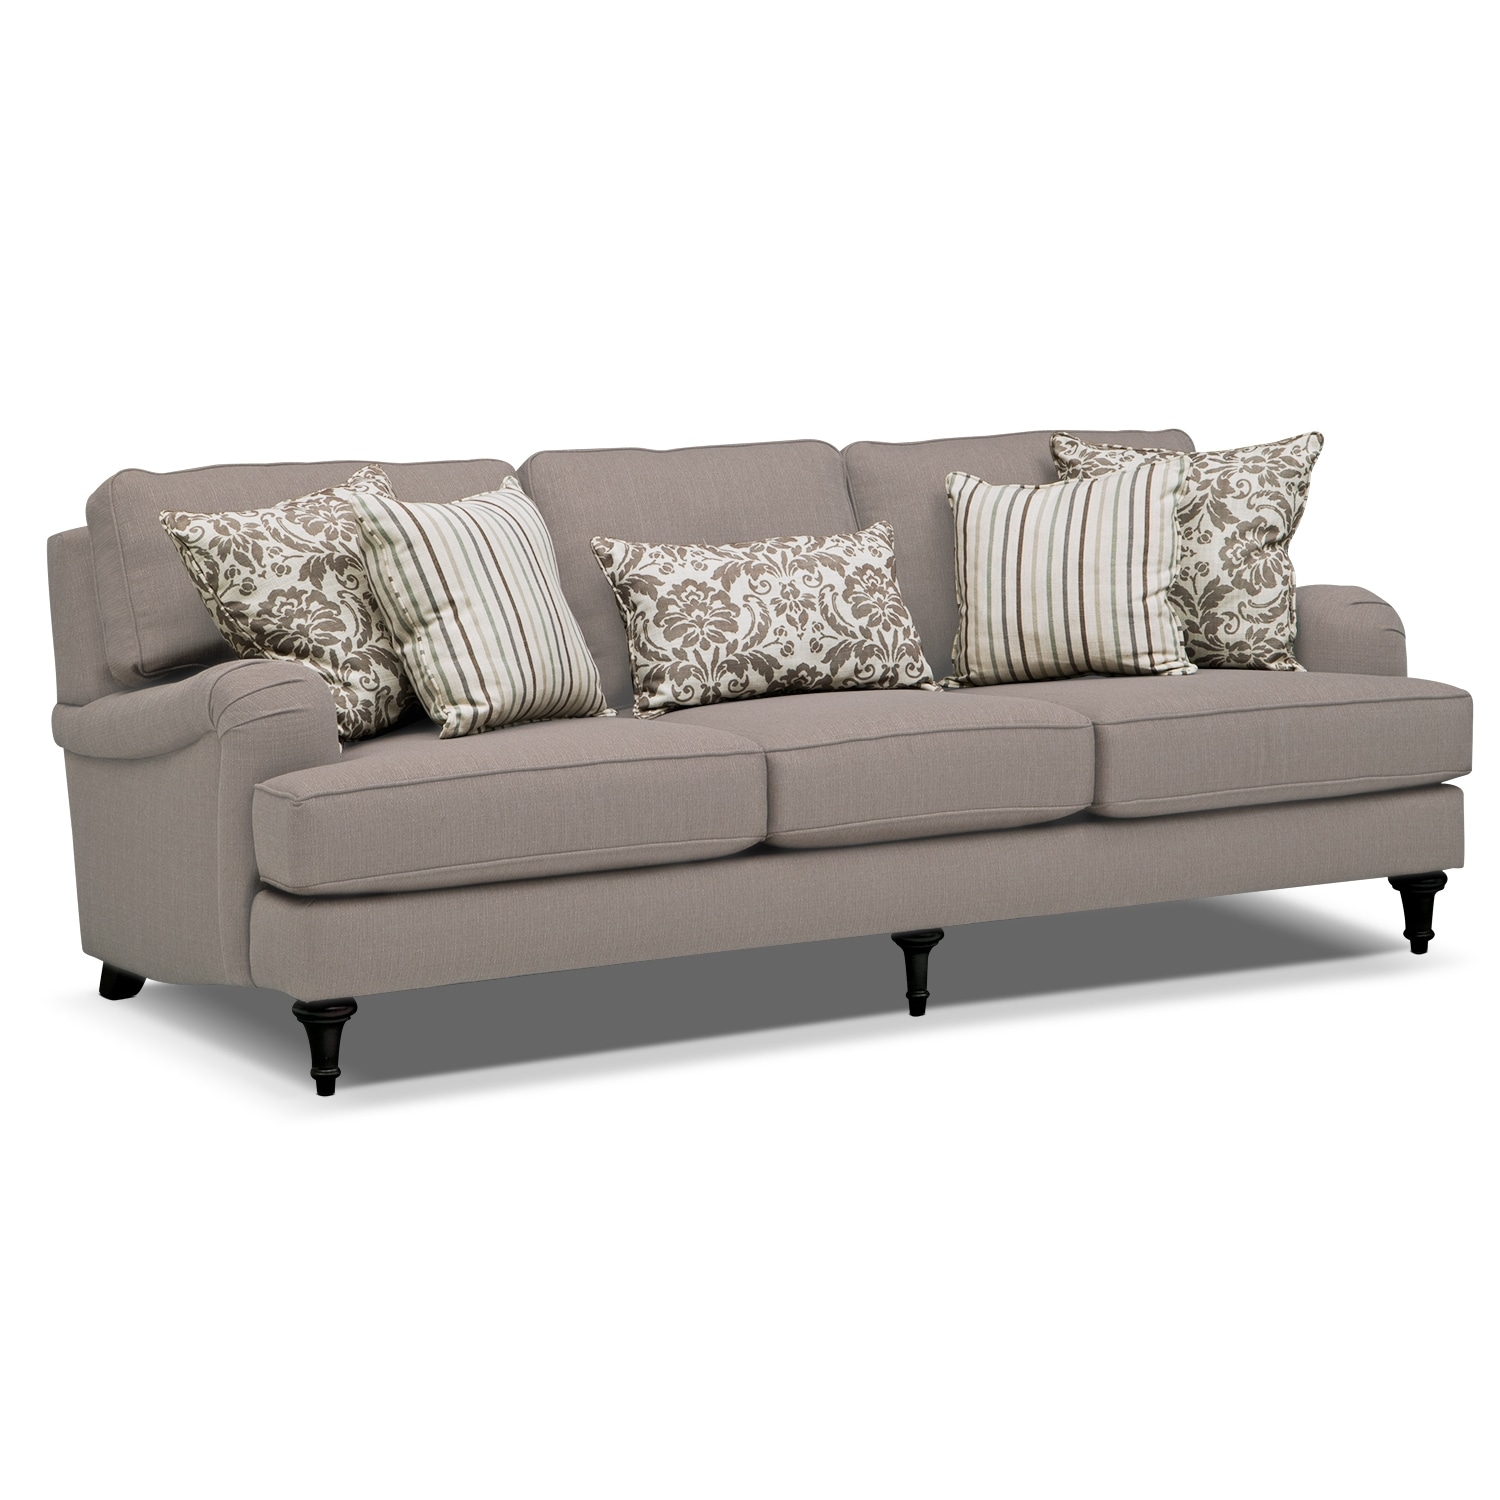 Candice Sofa Gray Value City Furniture : 312116 from www.valuecityfurniture.com size 1500 x 1500 jpeg 202kB